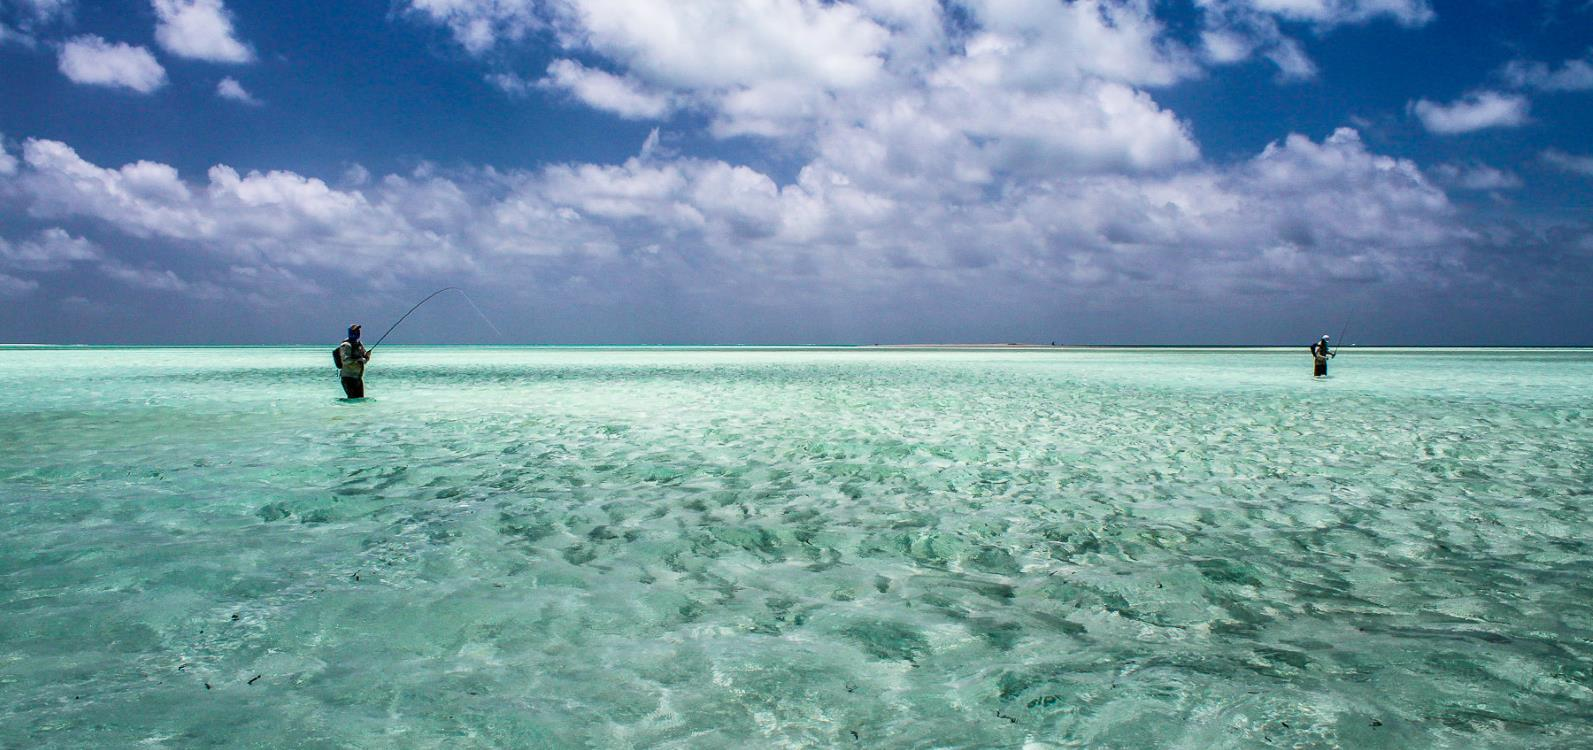 Saltwater fly fishing at Alphonse Atoll - Guy fly fishing for bonefish (which is swimming everywhere)